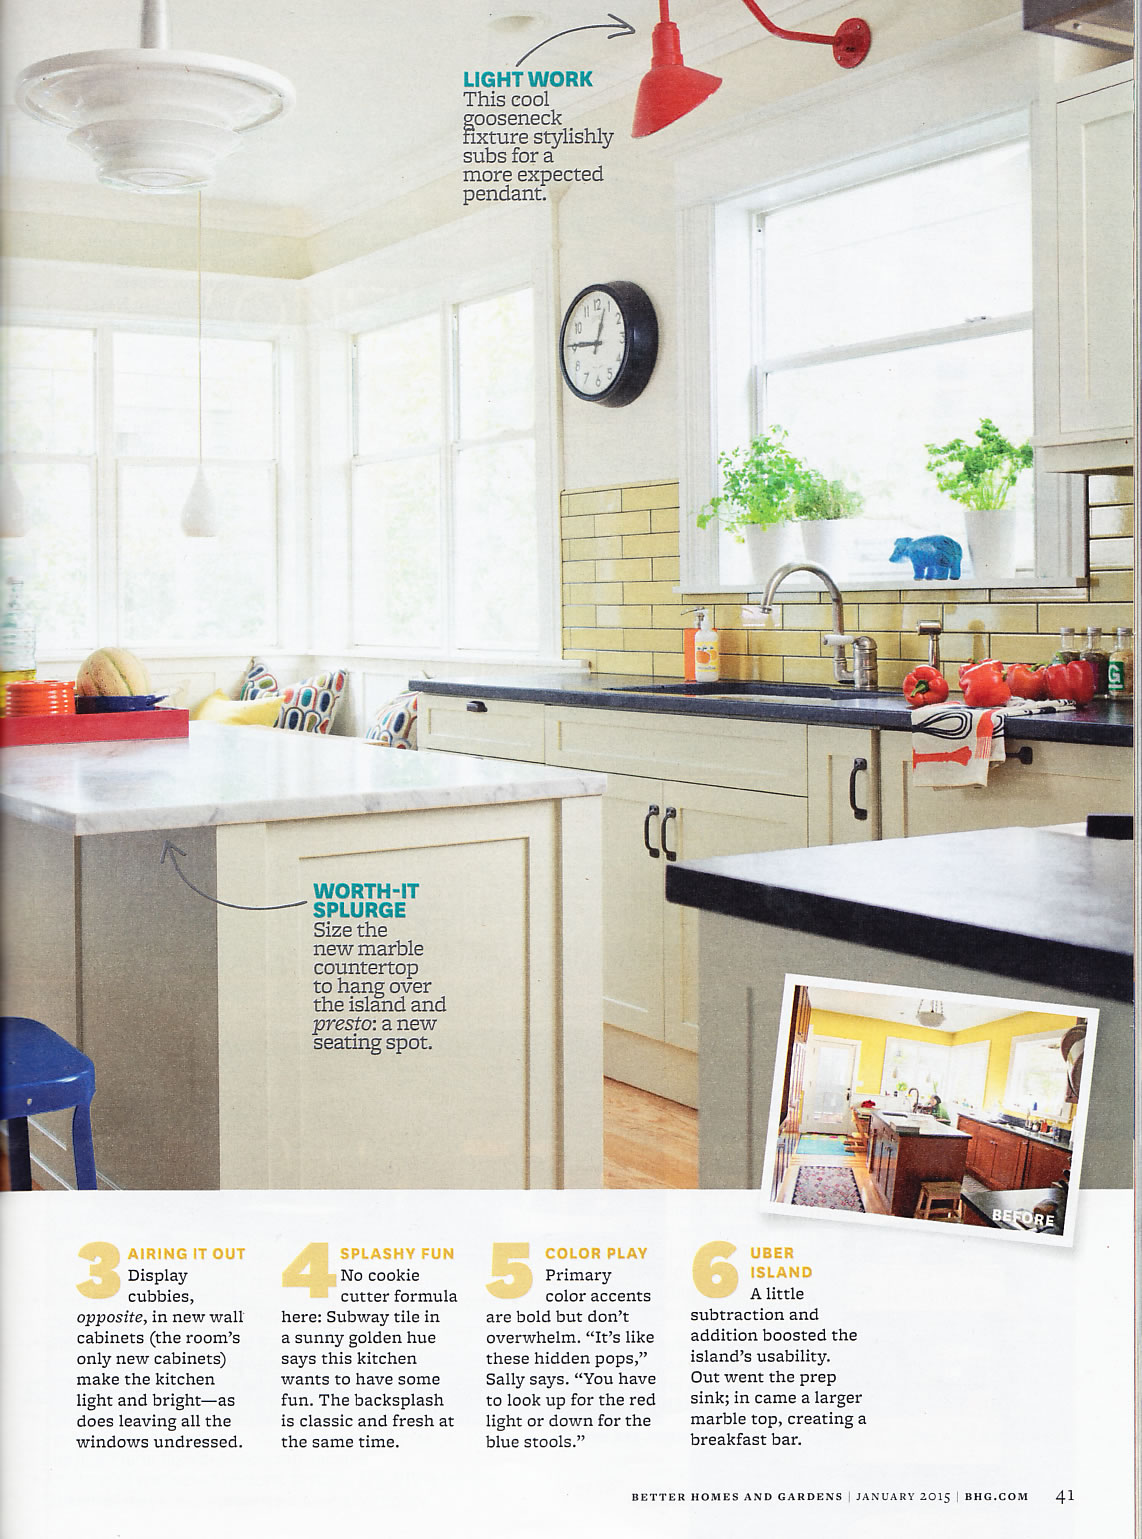 Better Homes and Gardens December 2014/January 2015